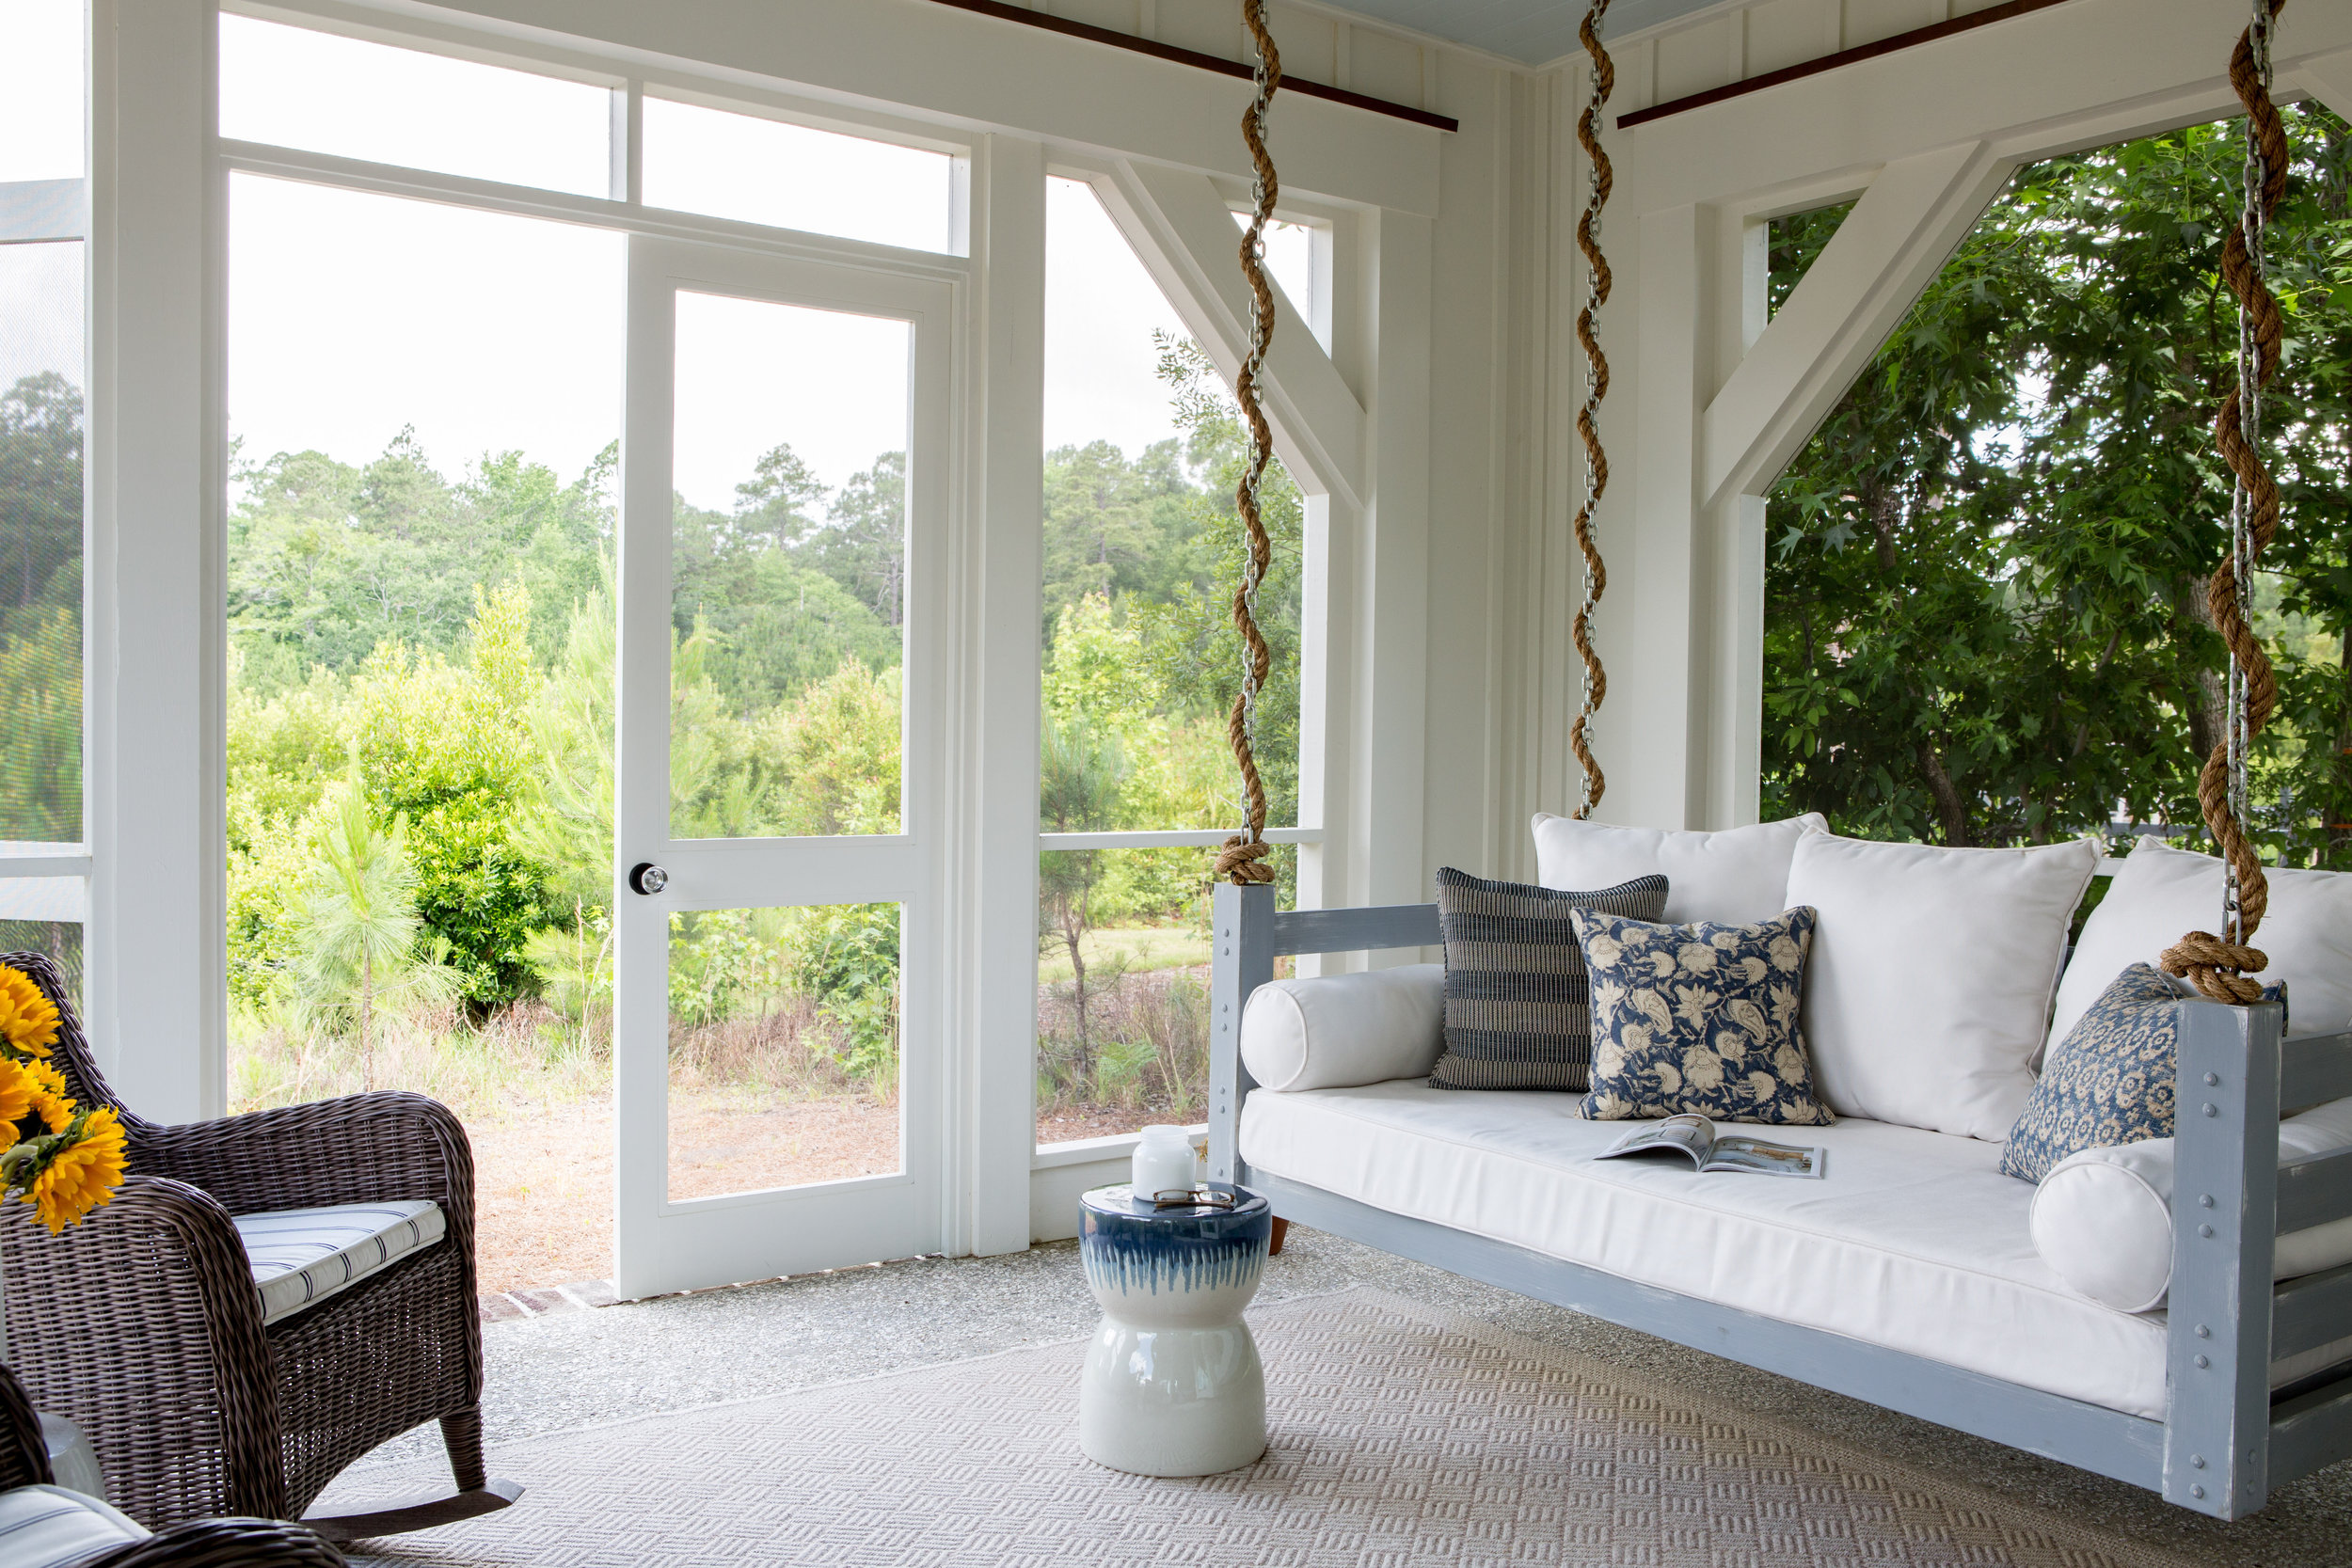 Coastal Cottage Interior Design Inspiration - Part 1 {Get the Look!}